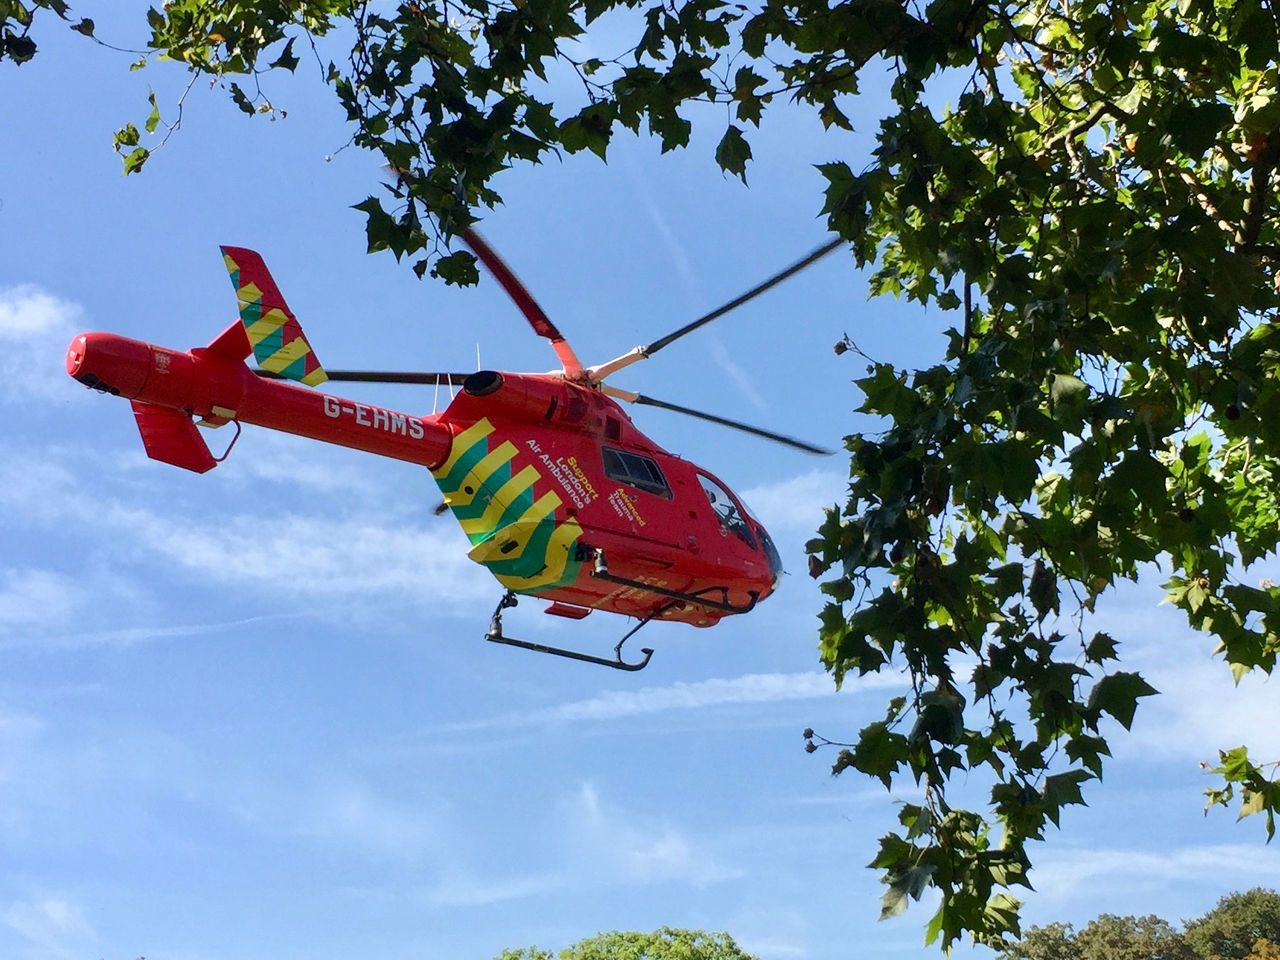 Branch Day Flying Green Color Helicopter Low Angle View No People Outdoors Red Sky Tree